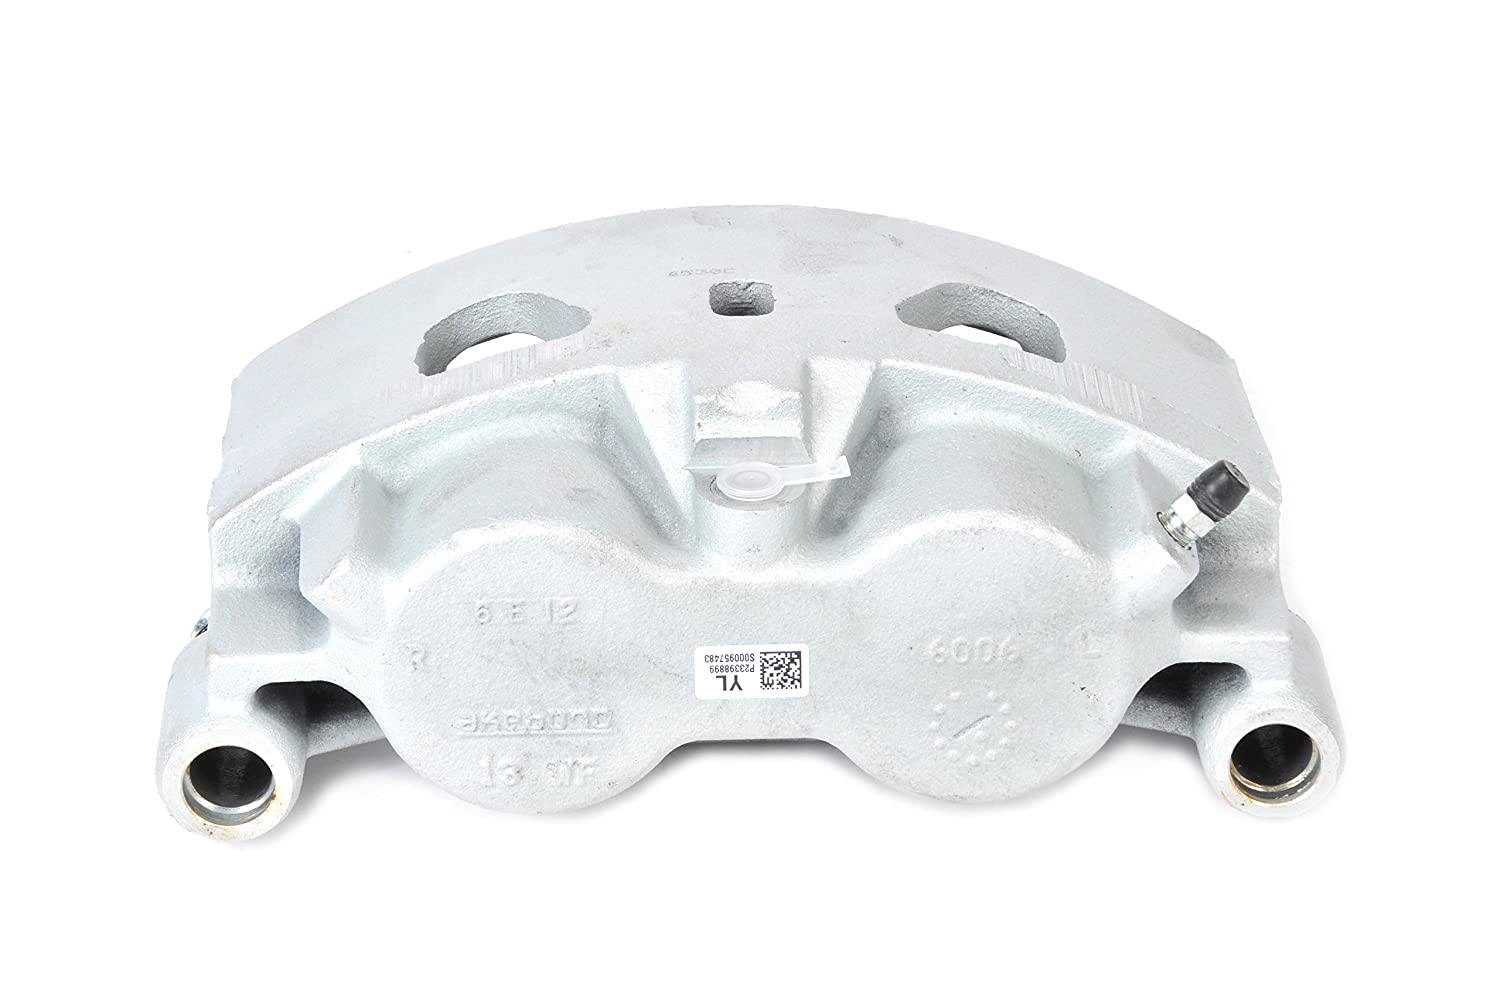 ACDelco 172-2731 GM Original Equipment Front Driver Side Disc Brake Caliper Assembly without Brake Pads or Bracket